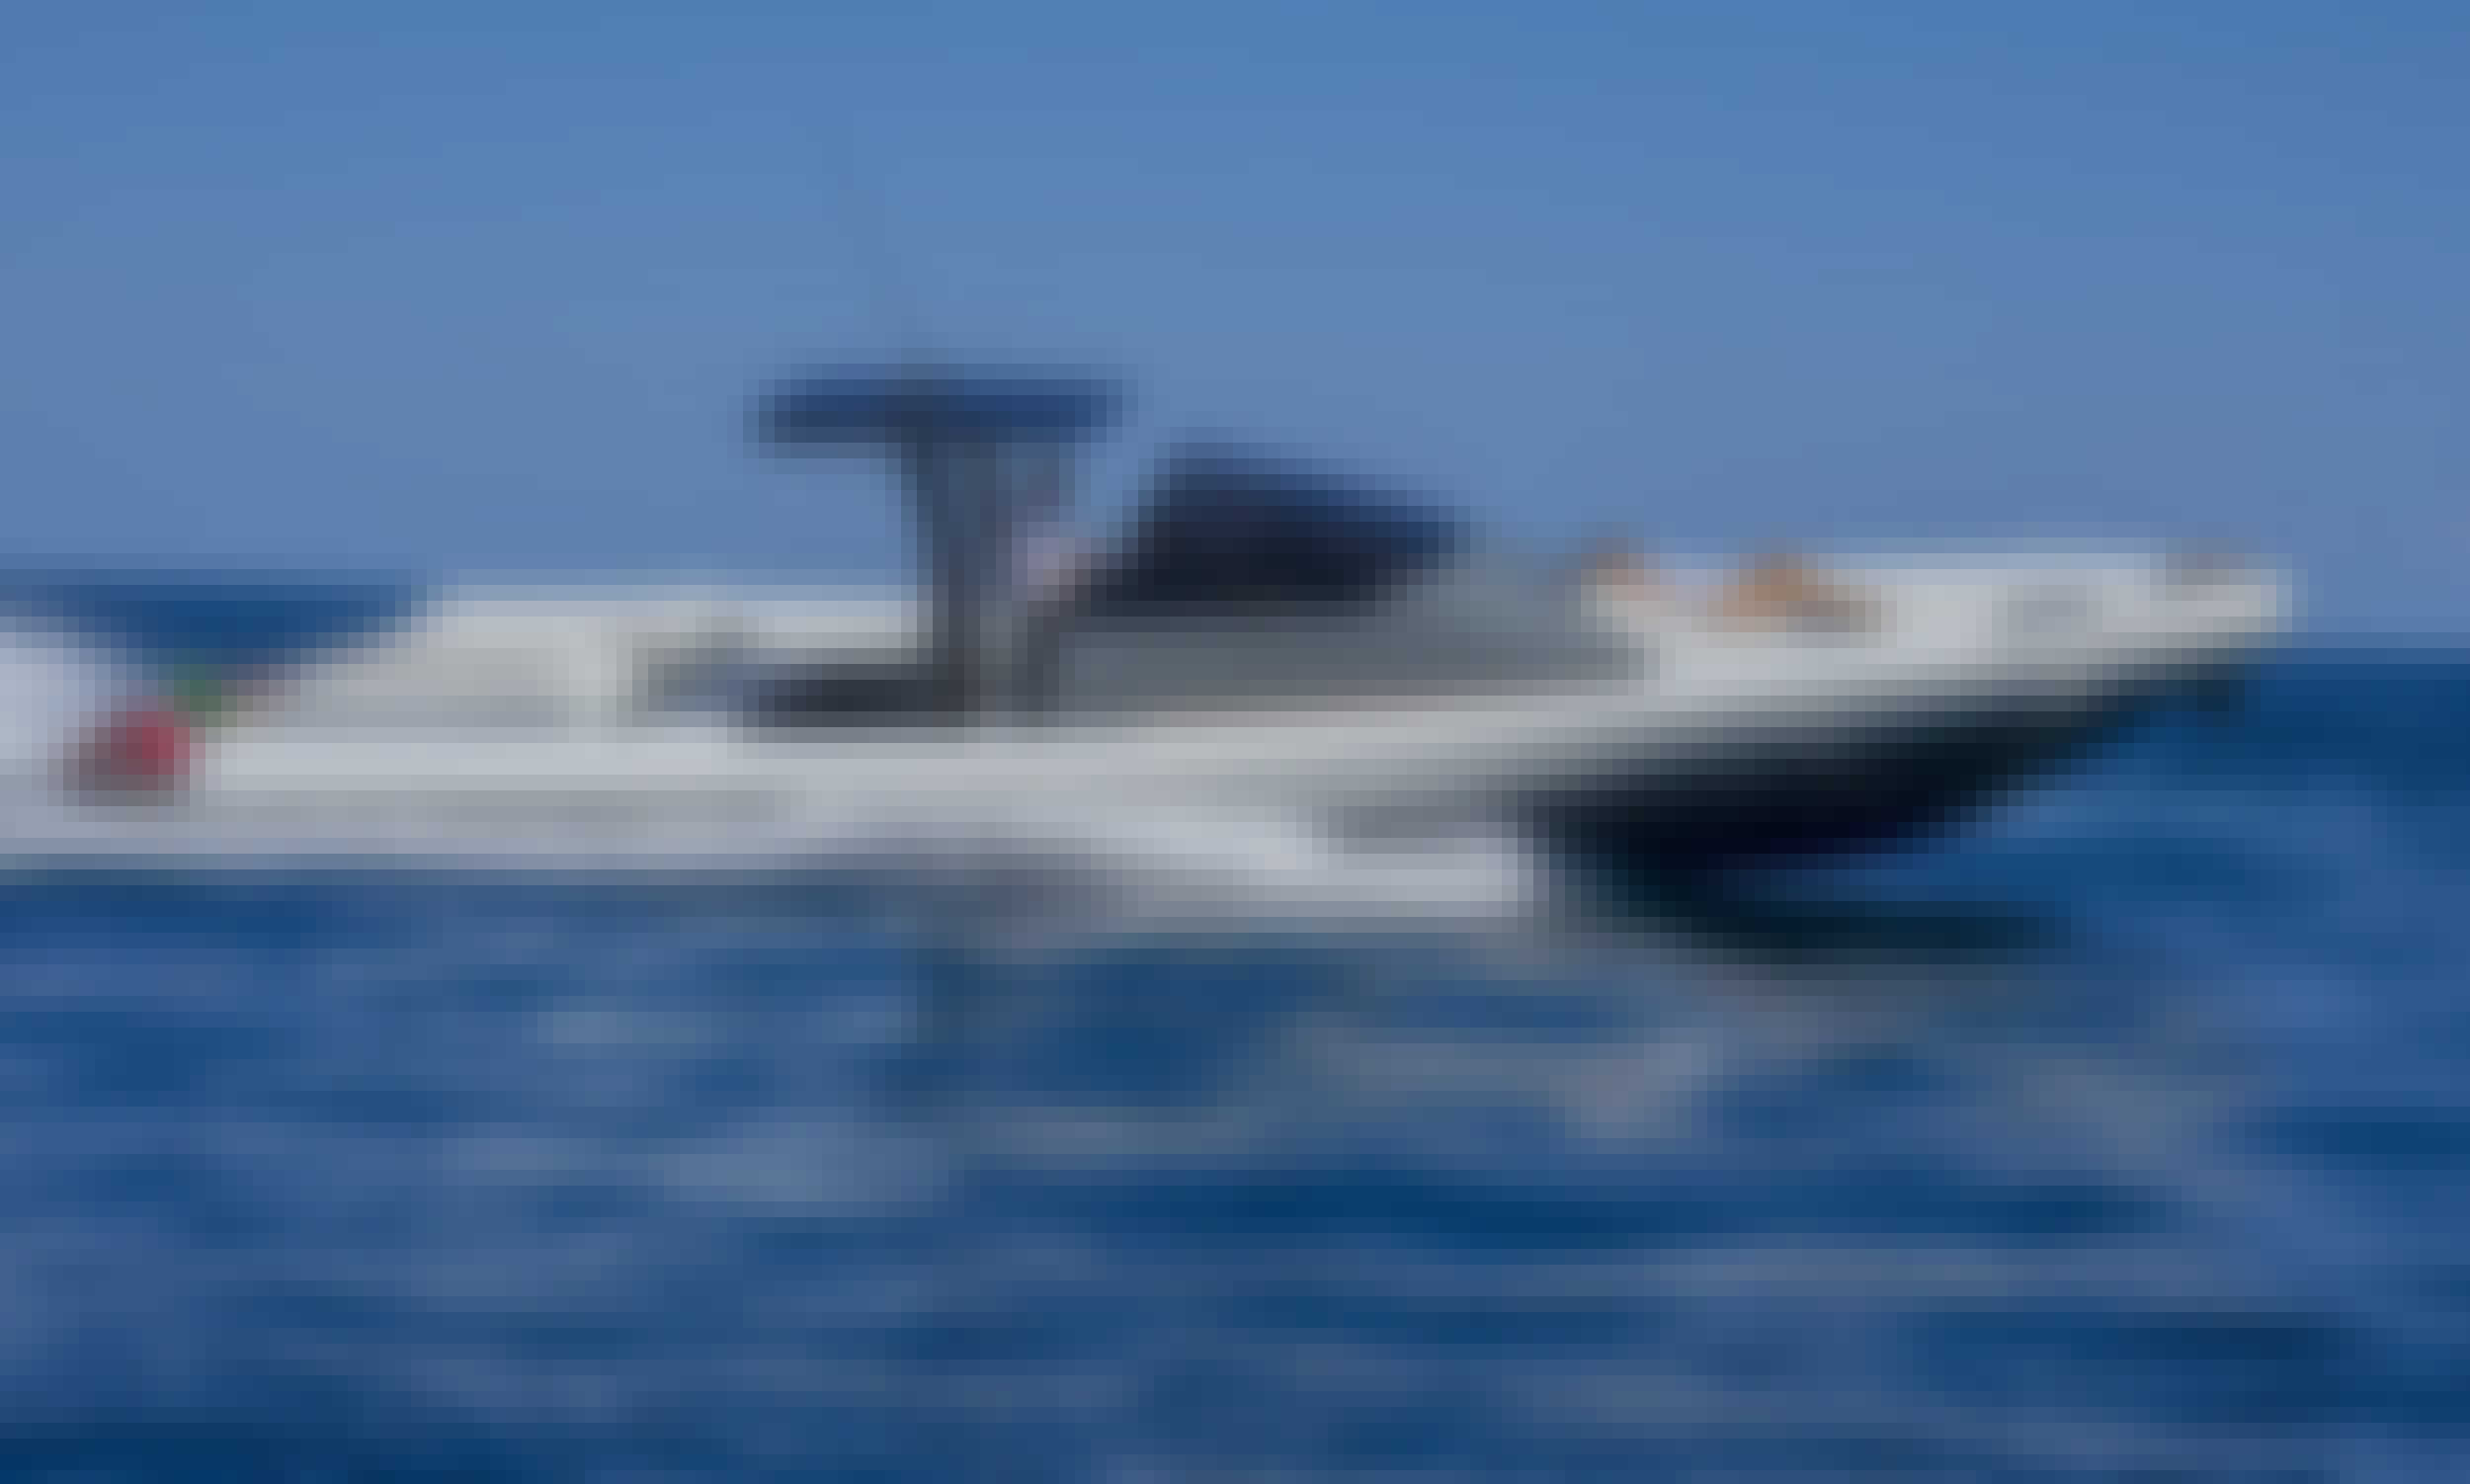 43ft open Luxury MEGA RIB BOAT, Enjoy a Fast and Exciting Adventure in Ibiza and Formentera, Spain. Best Price in the market.